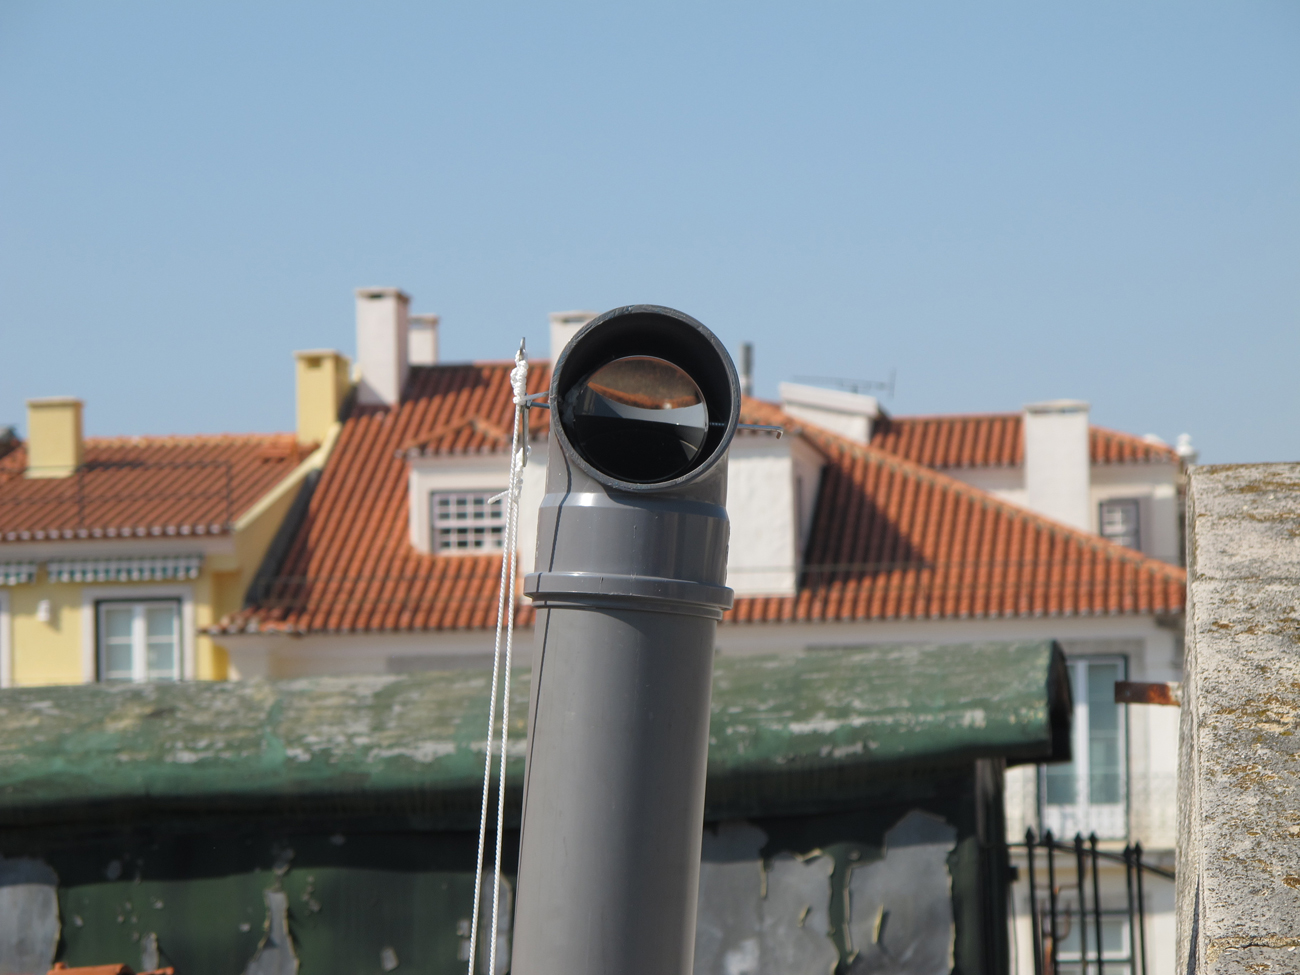 detail of periscope and exterior view